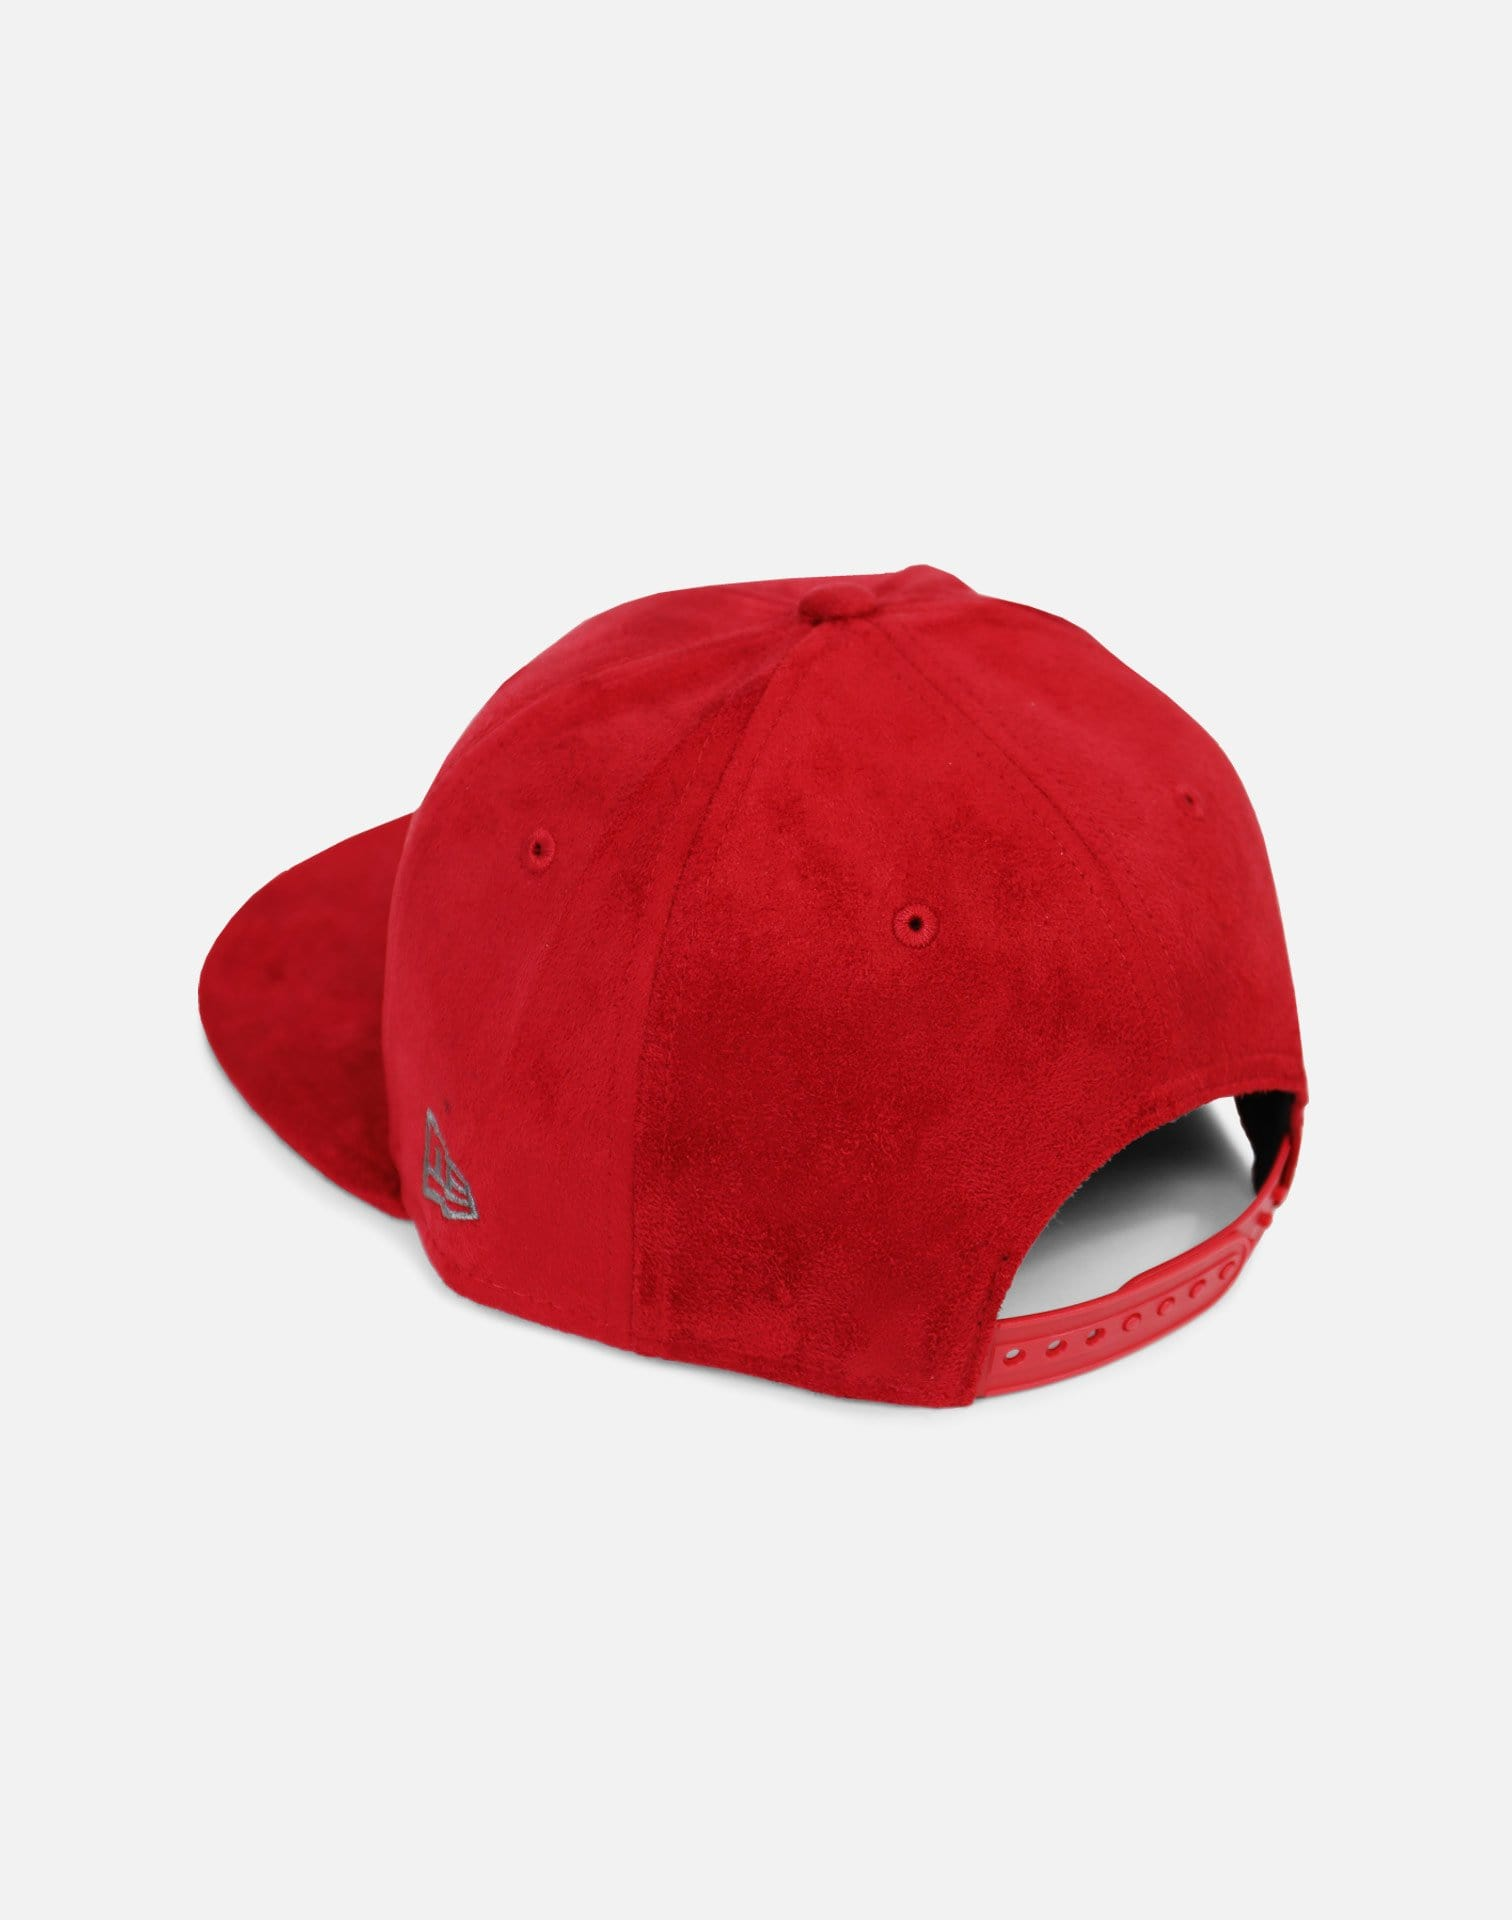 New Era Detroit Tigers Suede Snapback Hat (Red)